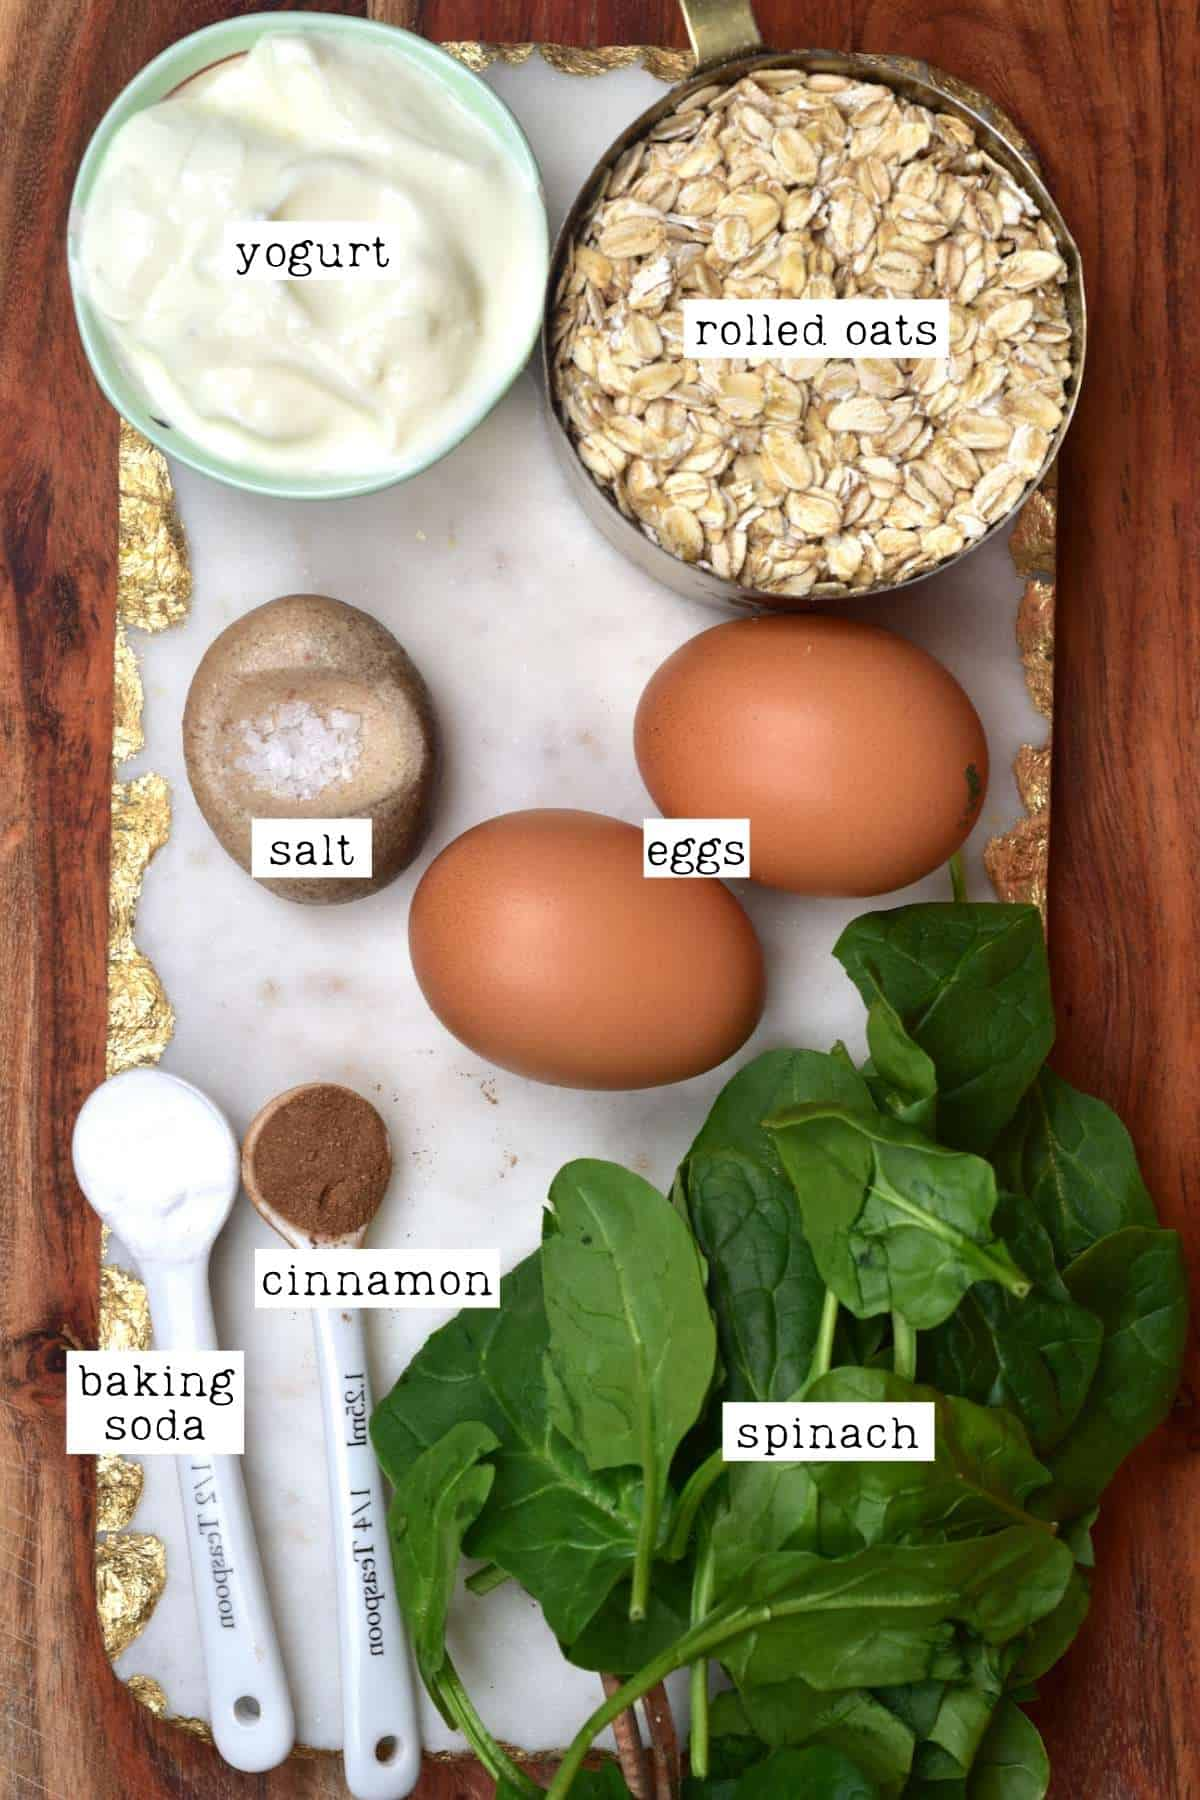 Ingredients for spinach pancakes